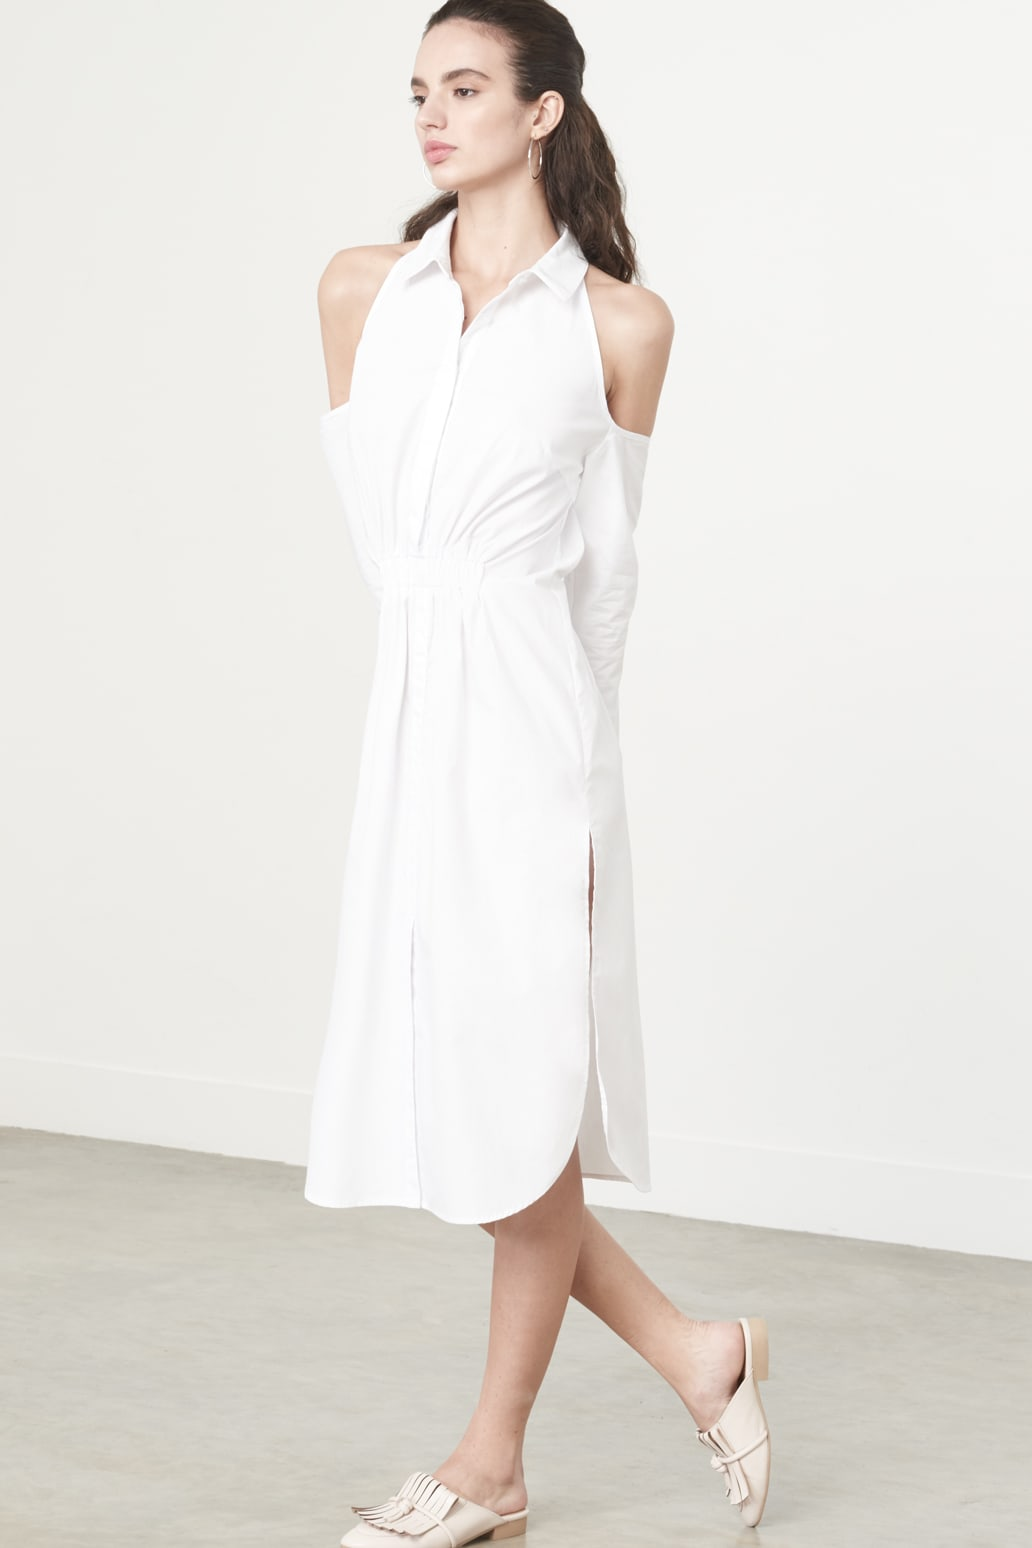 Cold Shoulder Shirt Dress in White Cotton